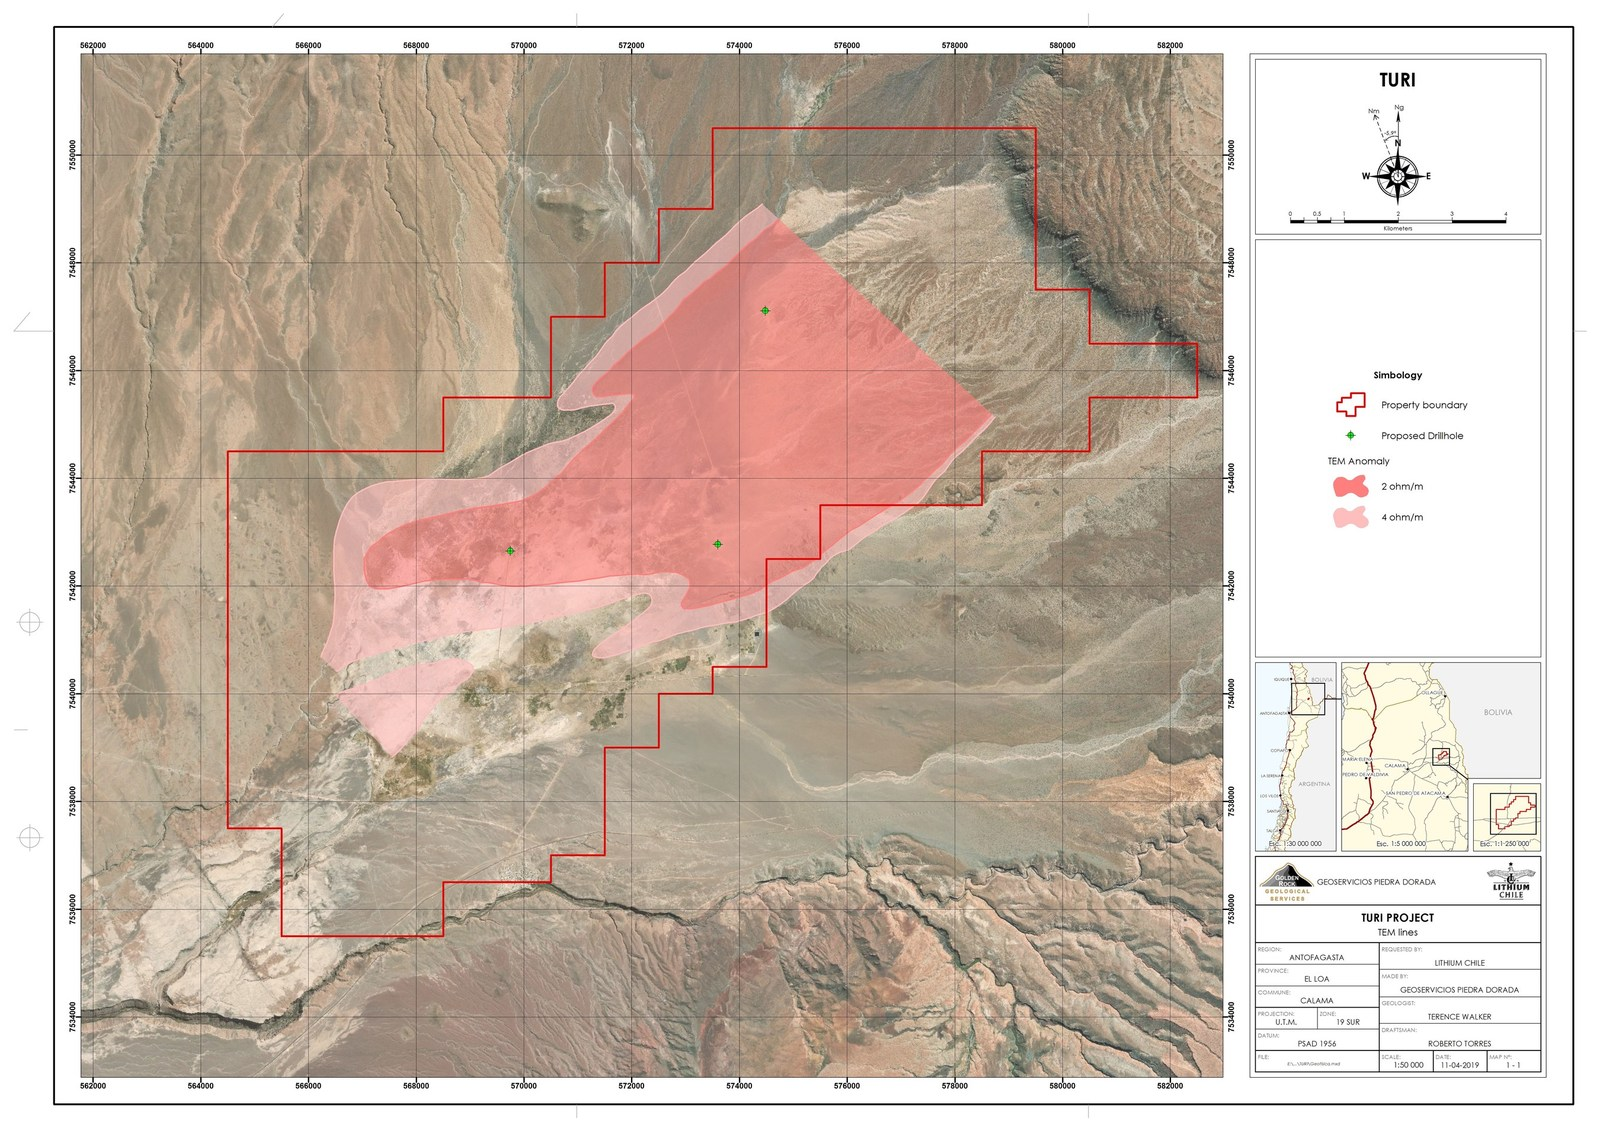 Turi Property - TEM and Proposed Drill Hole Location